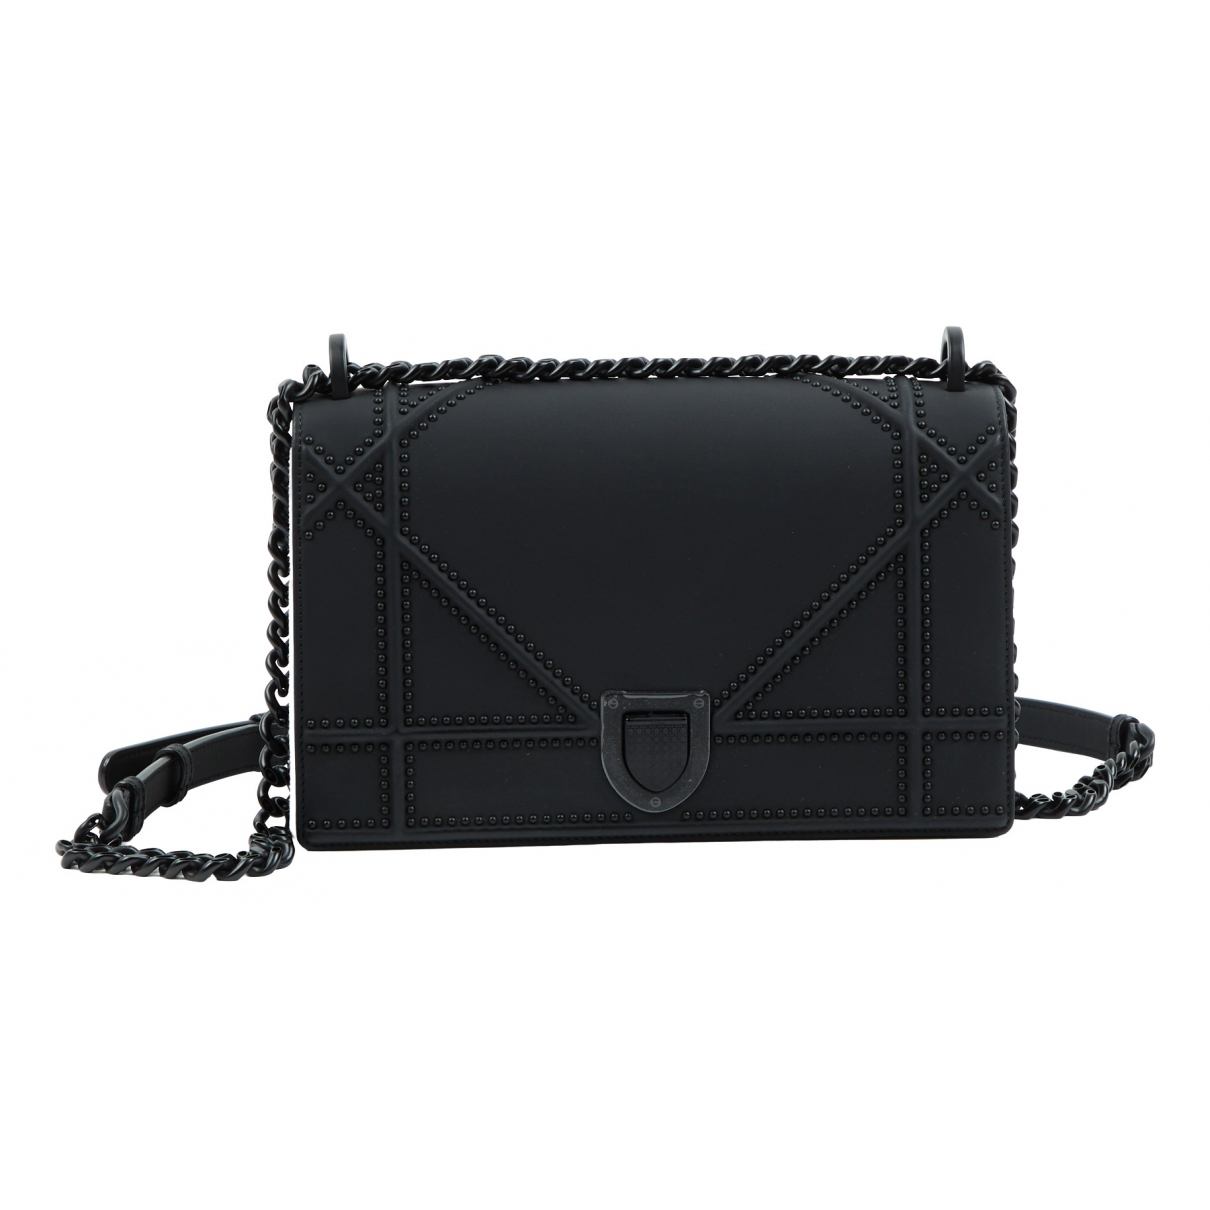 Dior Diorama Black Leather handbag for Women \N